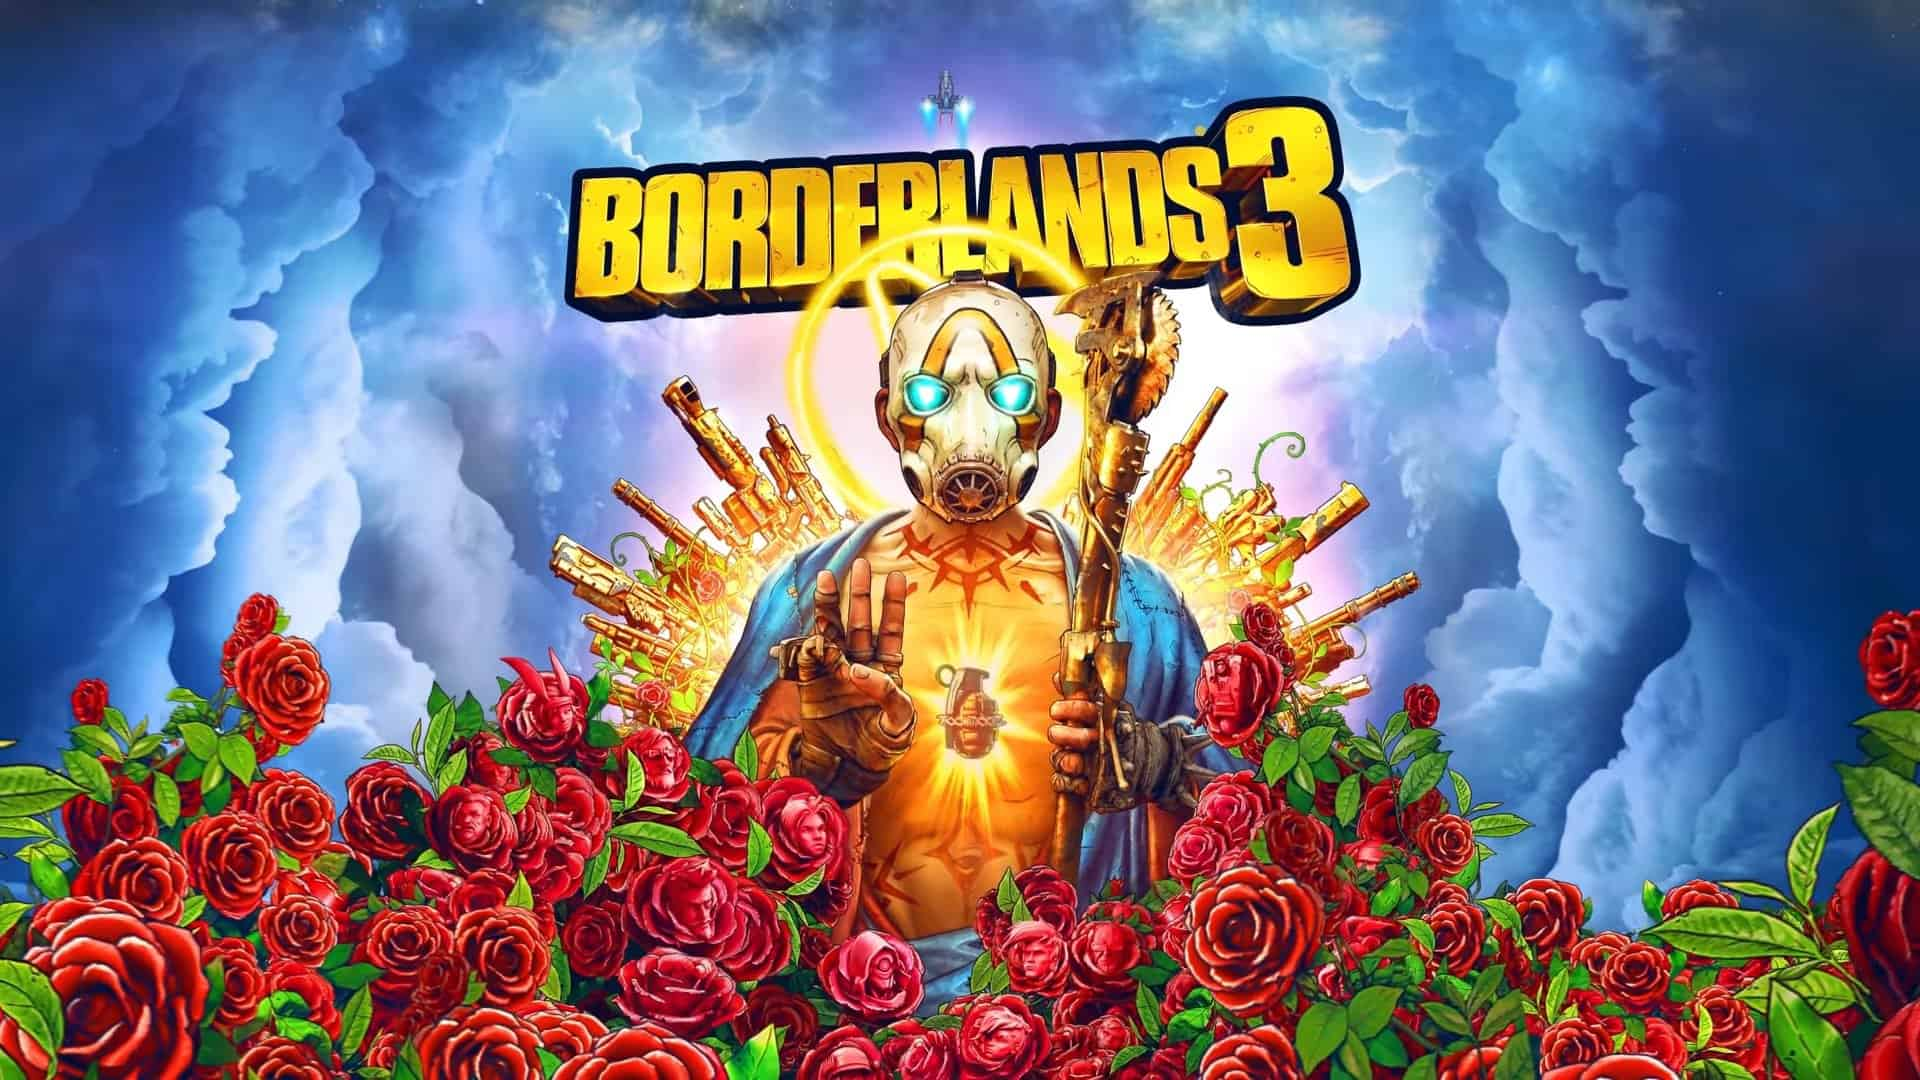 Borderlands 3 – When Can You Play? Learn The Launch Times For All Regions And Platforms Right Here